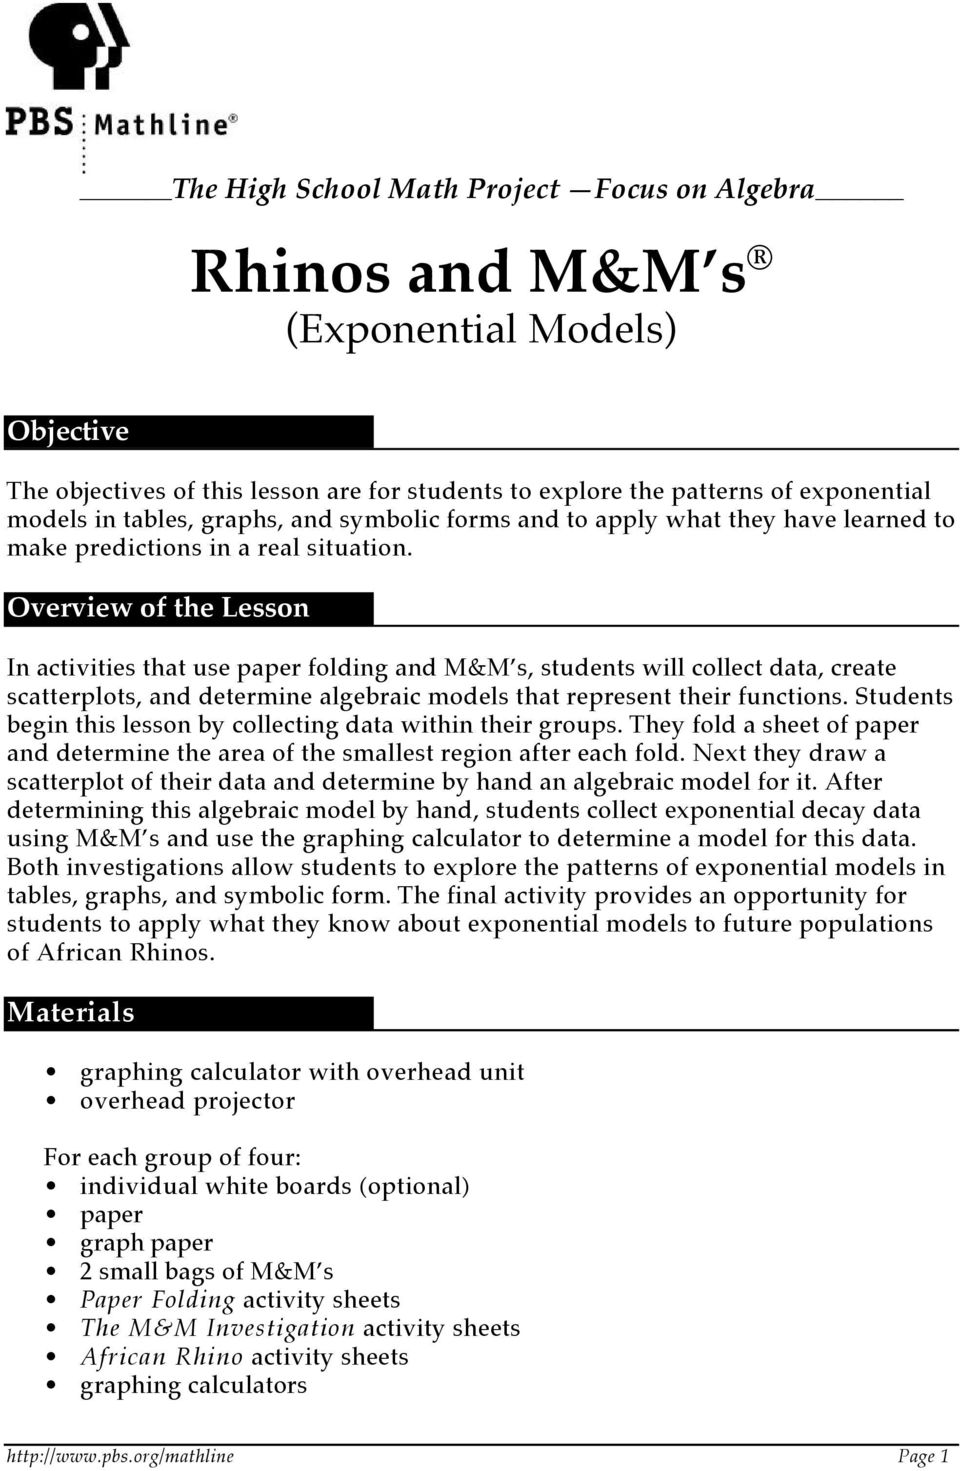 The High School Math Project Focus On Algebra Rhinos And Mm S